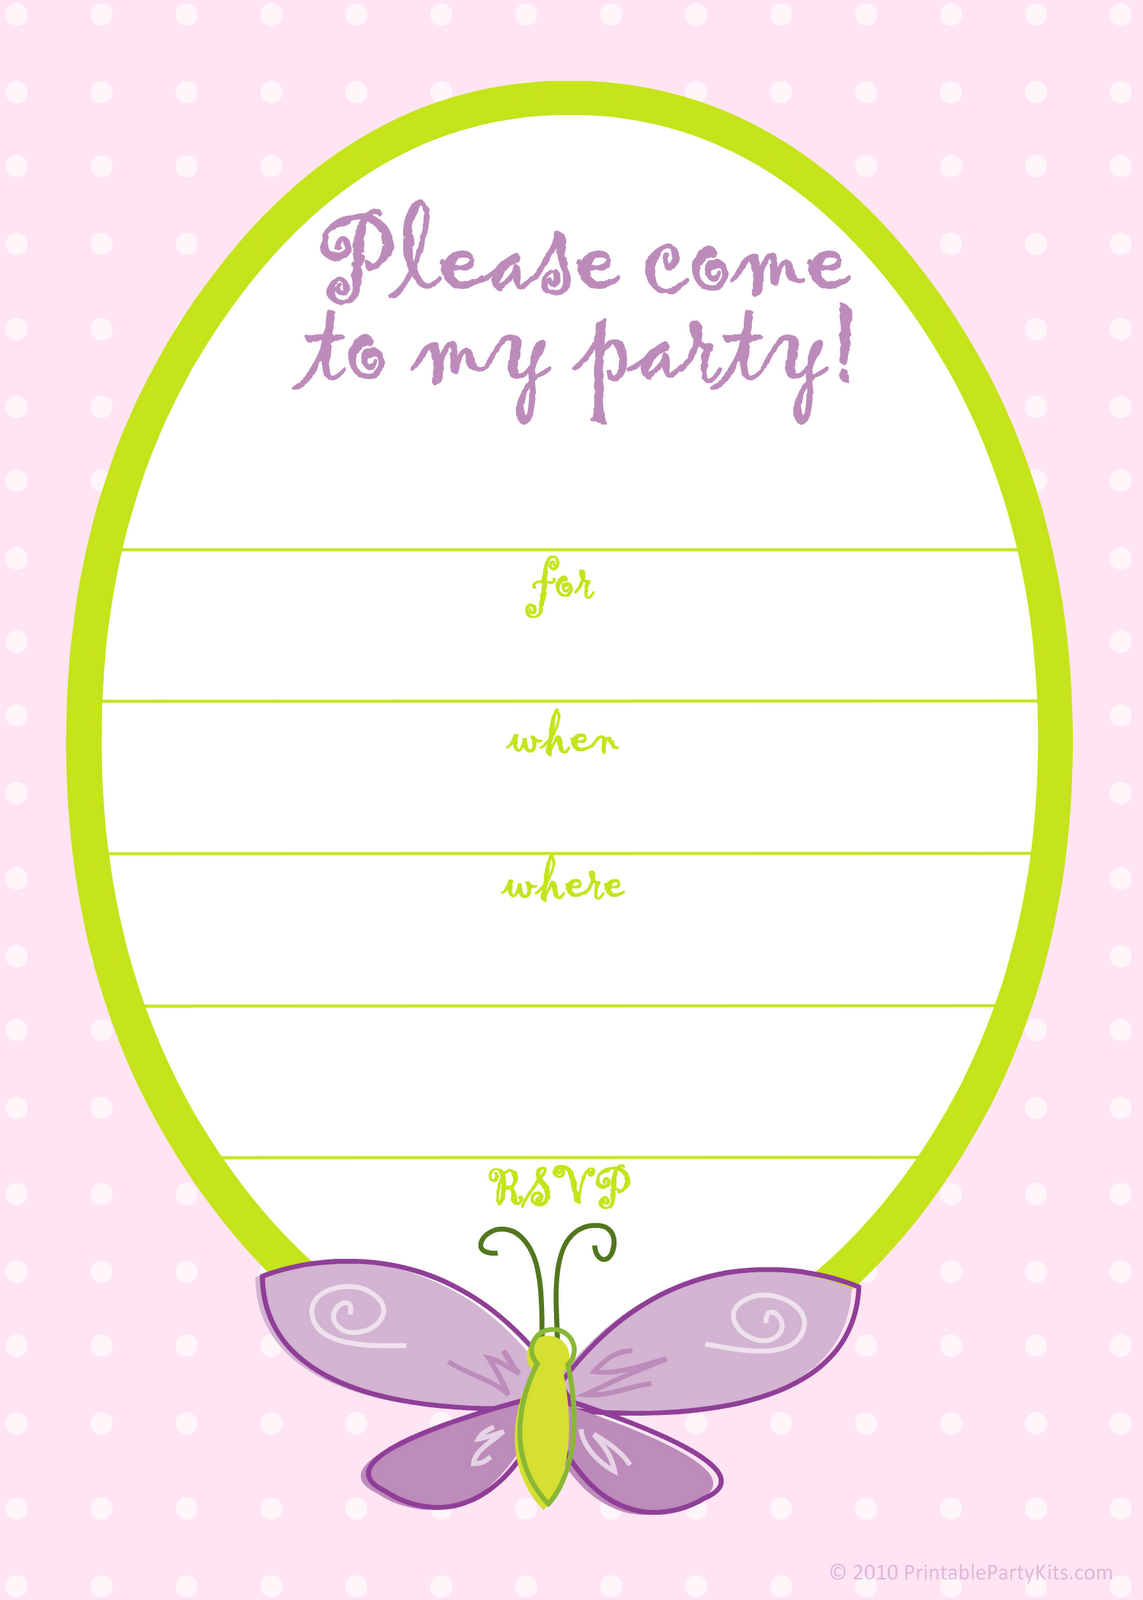 birthday invitations templates for girls invitation sample birthday invitations templates for girls